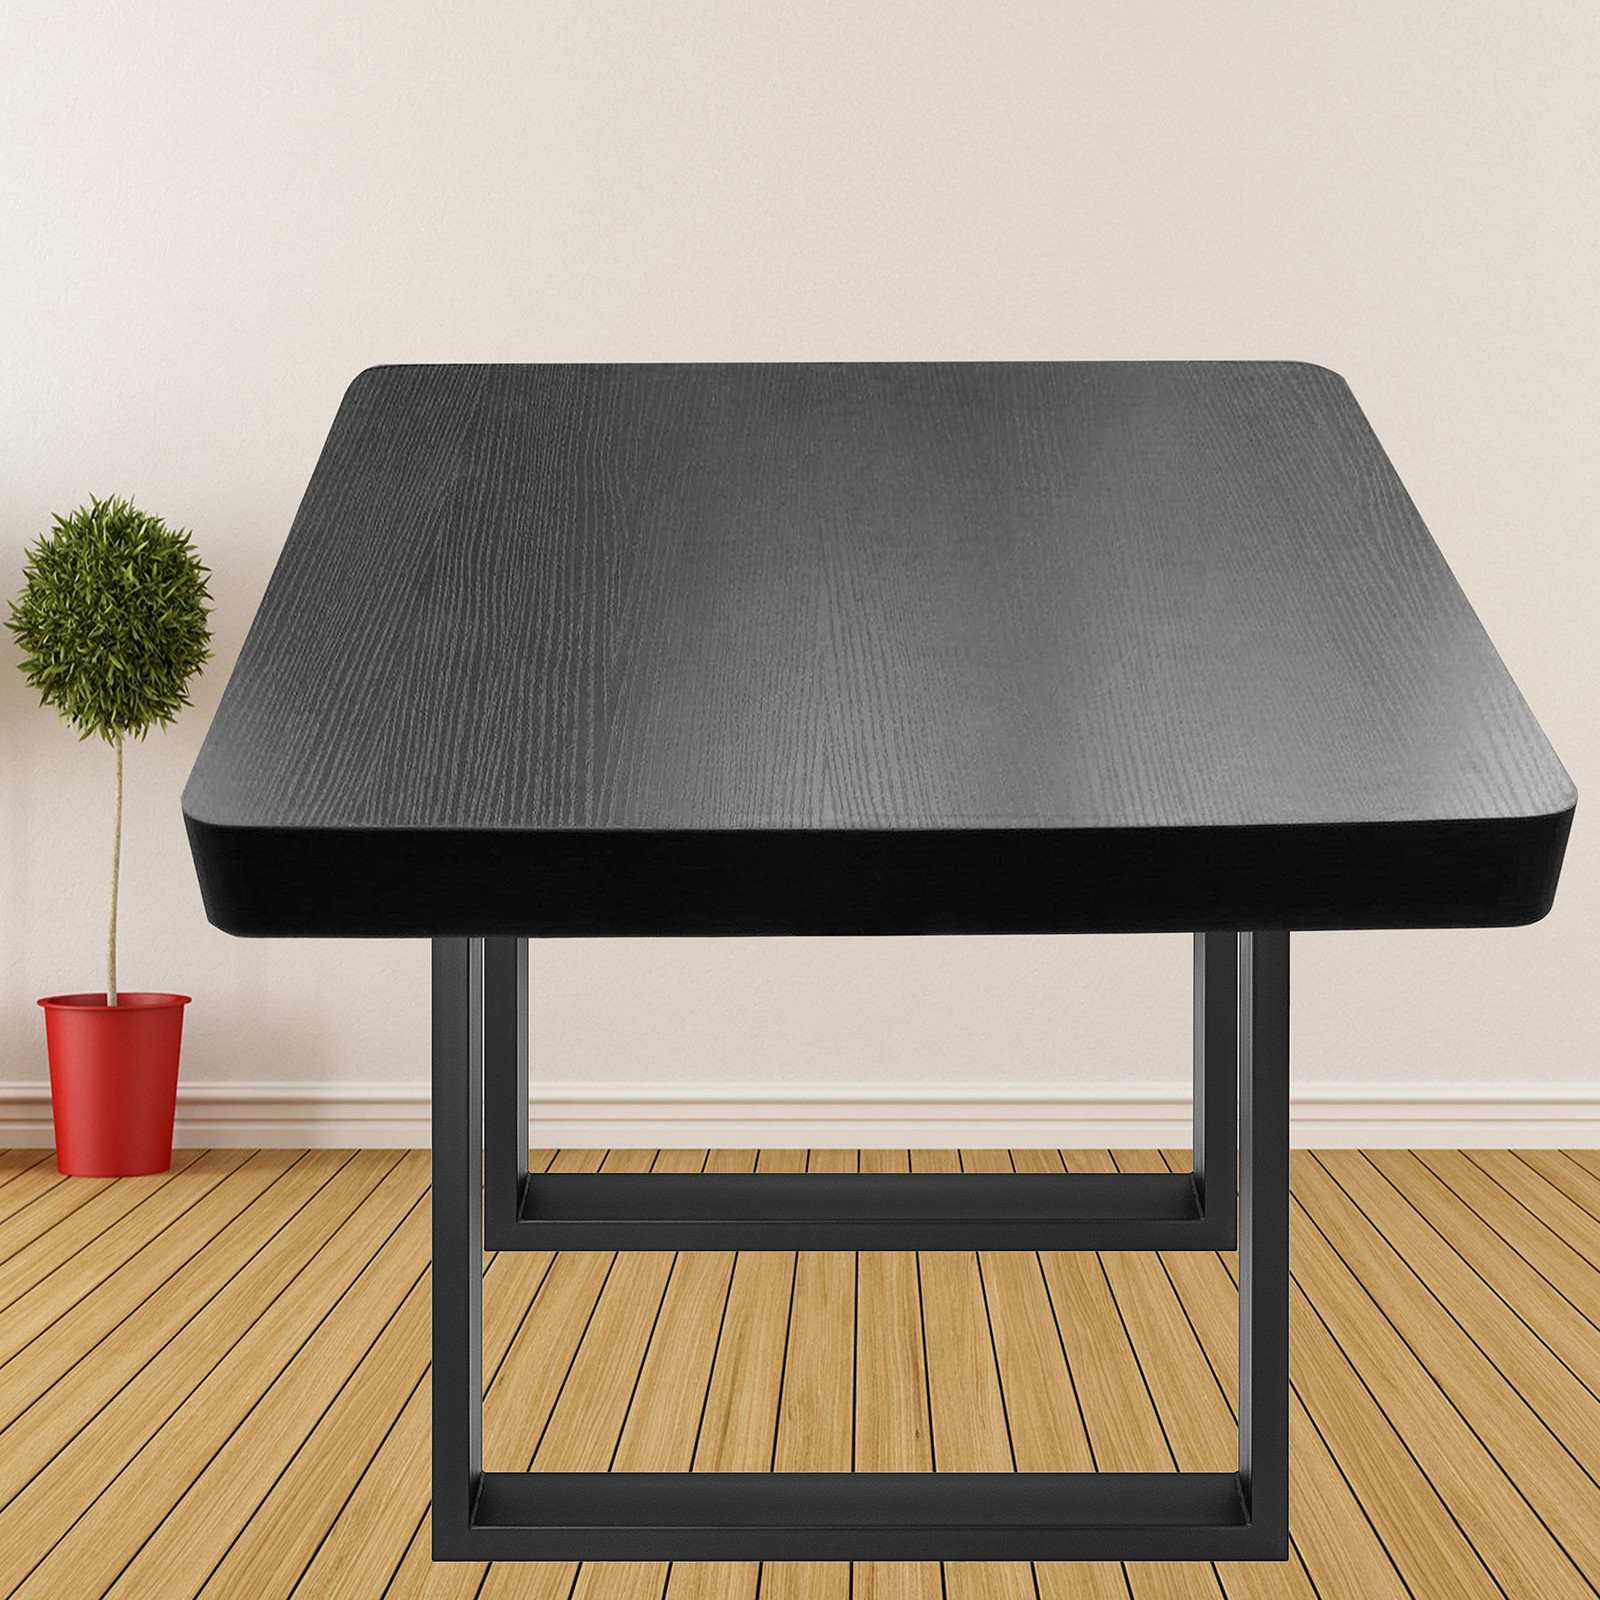 2X-Table-Legs-Black-Dining-Table-Leg-Heavy-Duty-Computer-Desk-Legs-Rectangle thumbnail 35